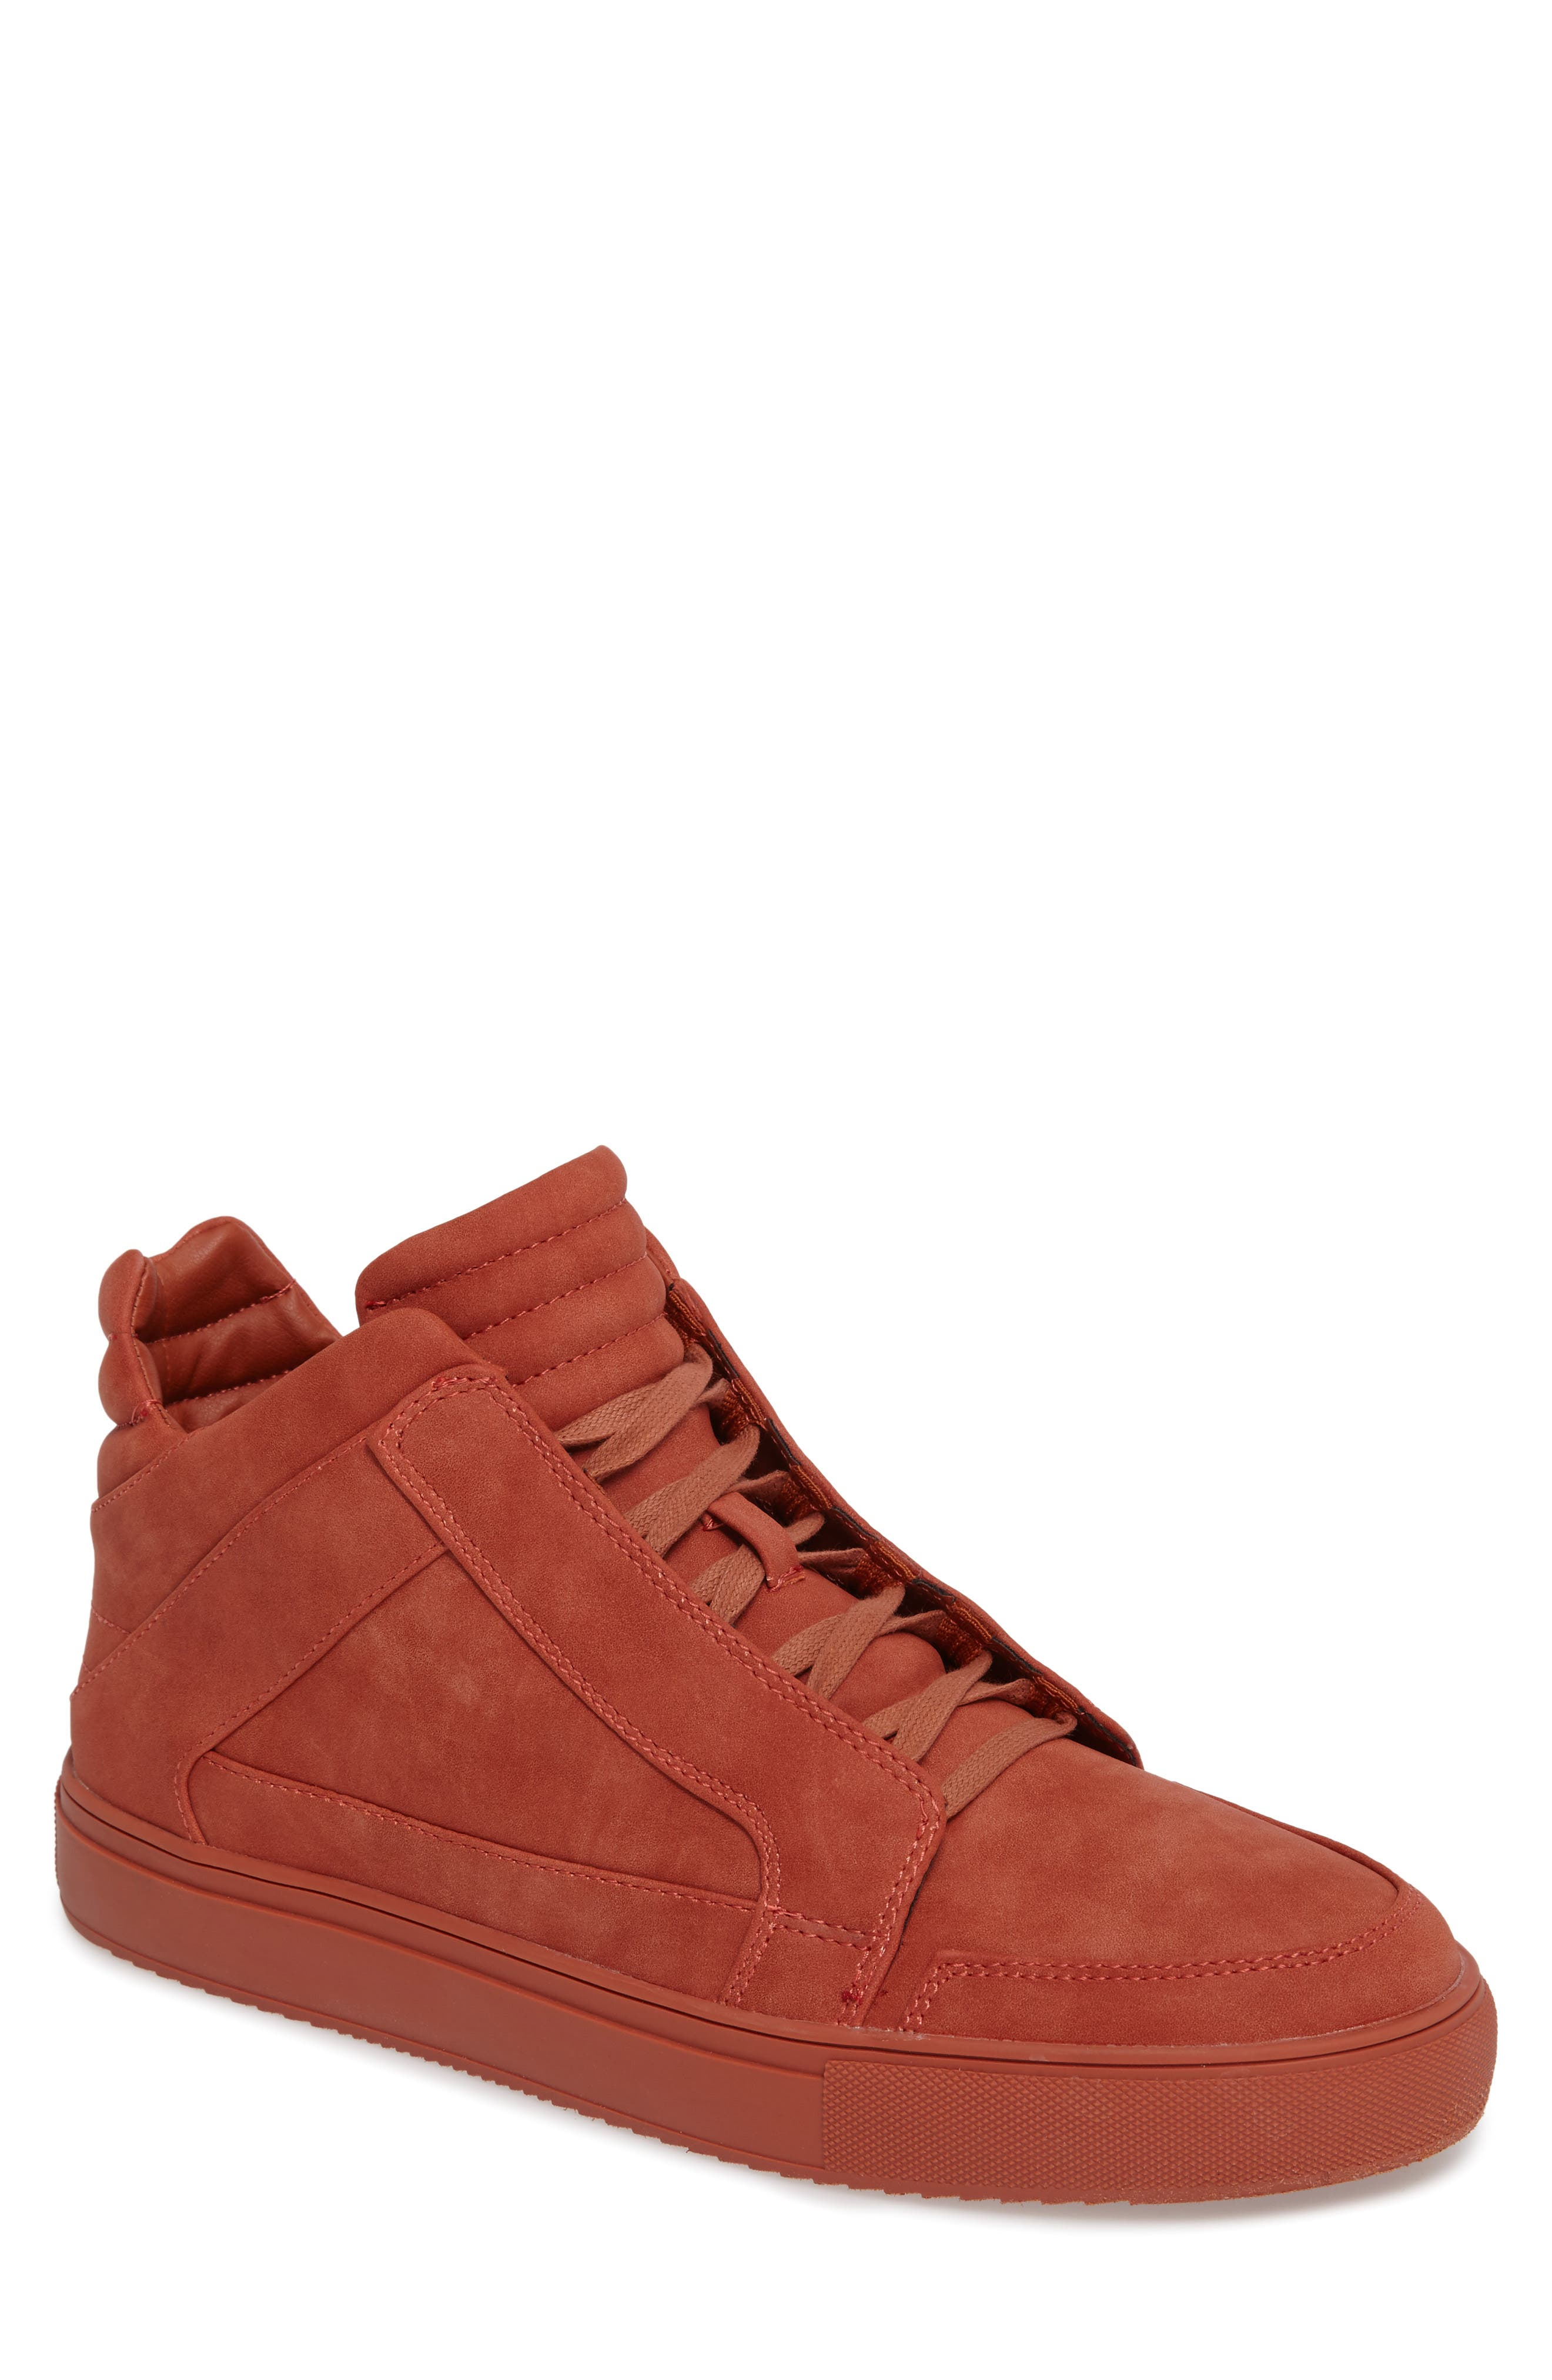 Alternate Image 1 Selected - Steve Madden Defstar Sneaker (Men)